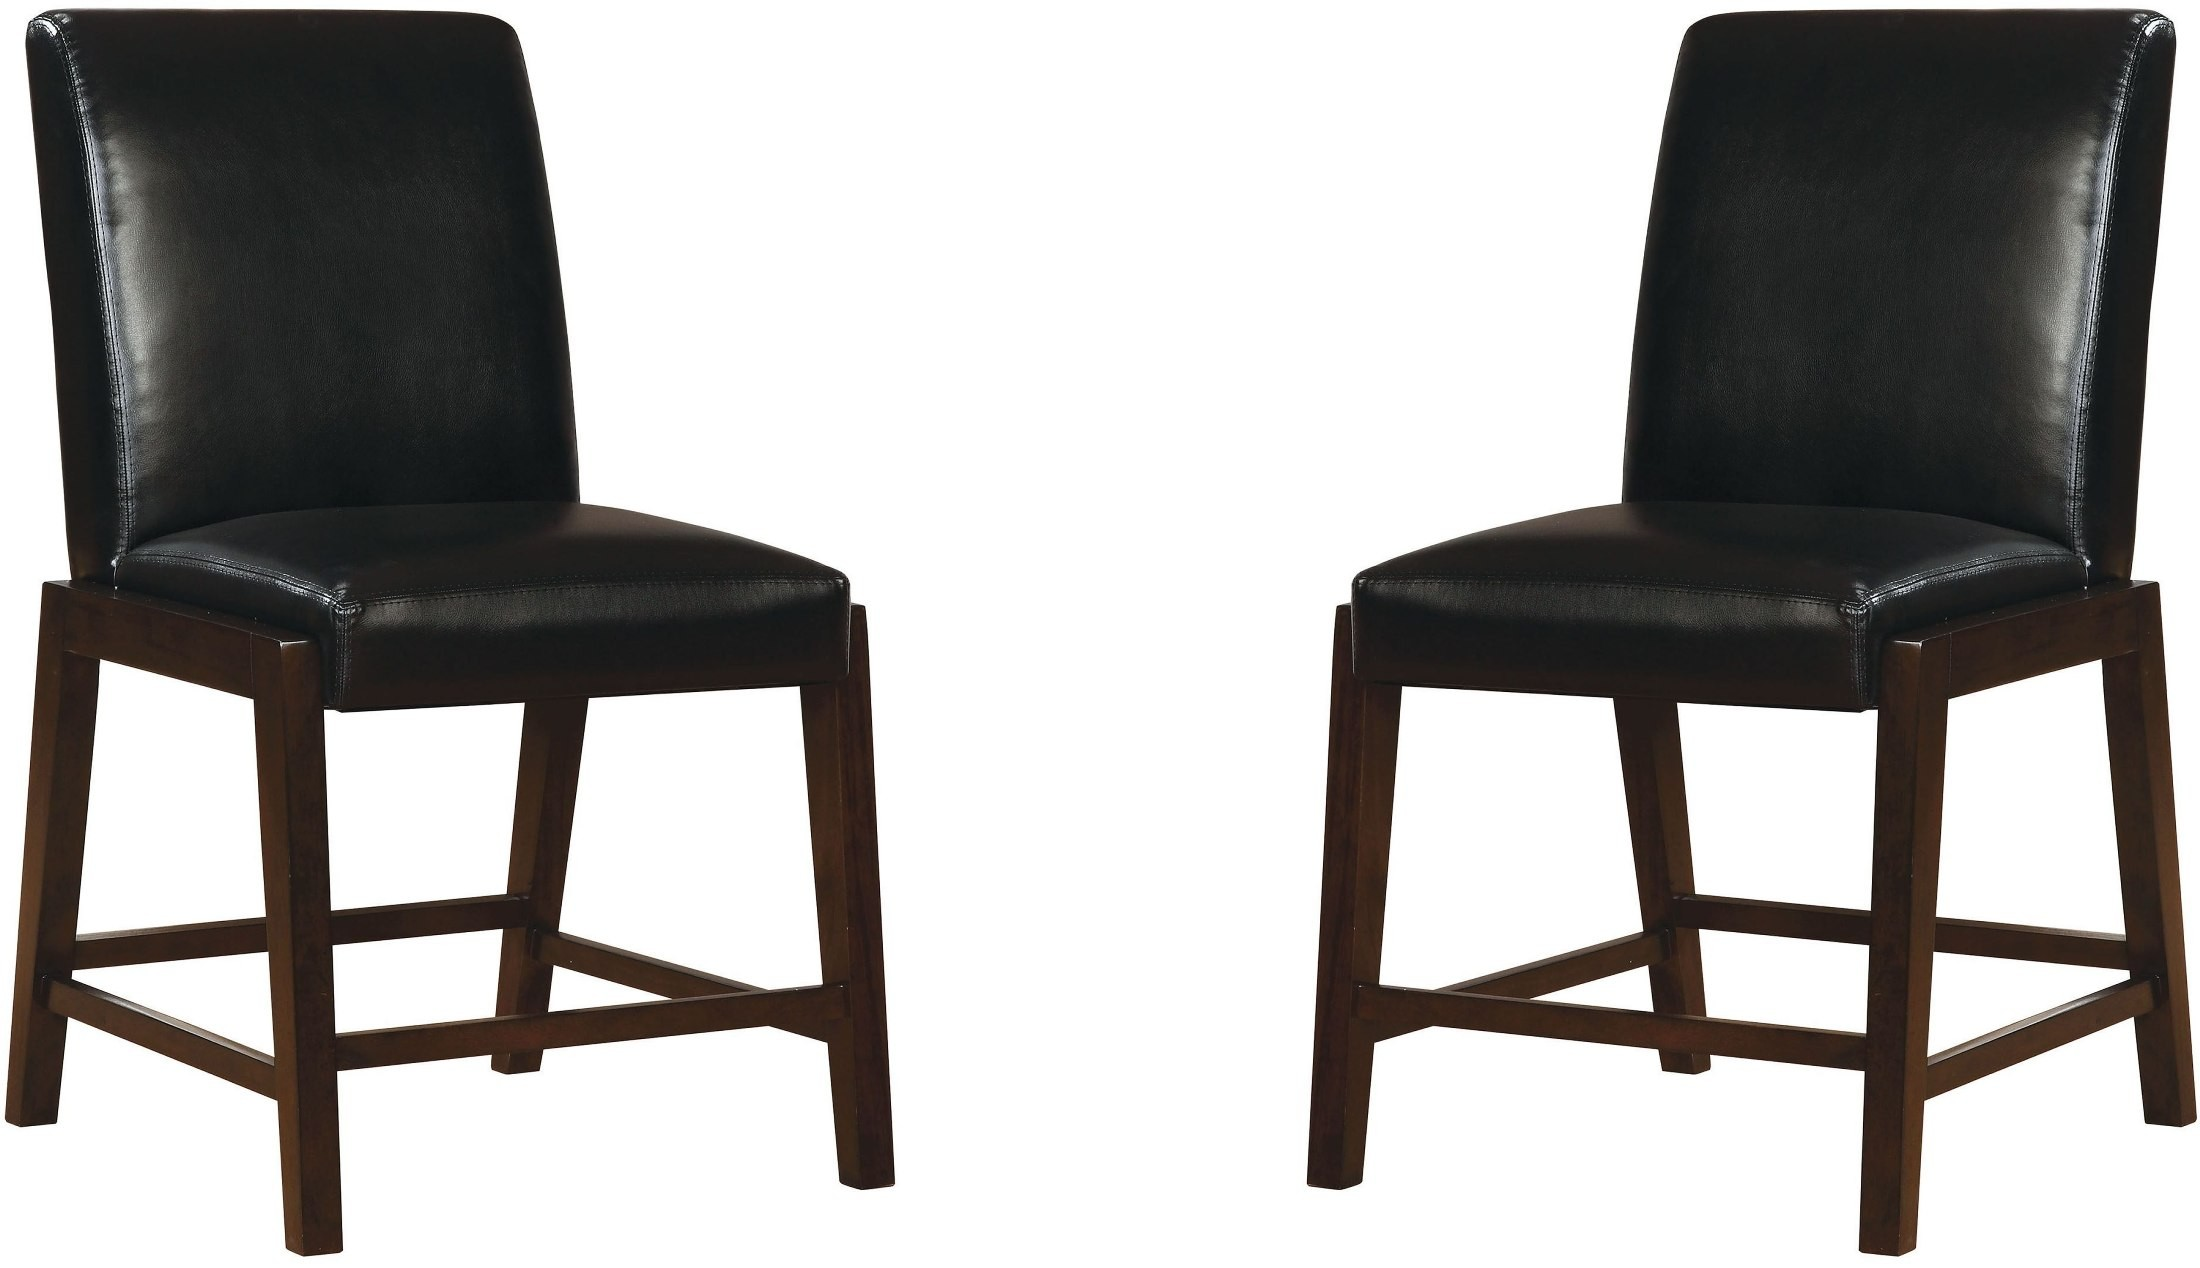 Counter Height Espresso Chairs : Ii Espresso Counter Height Chair Set Of 2, CM3357PC-2PK, Furniture ...